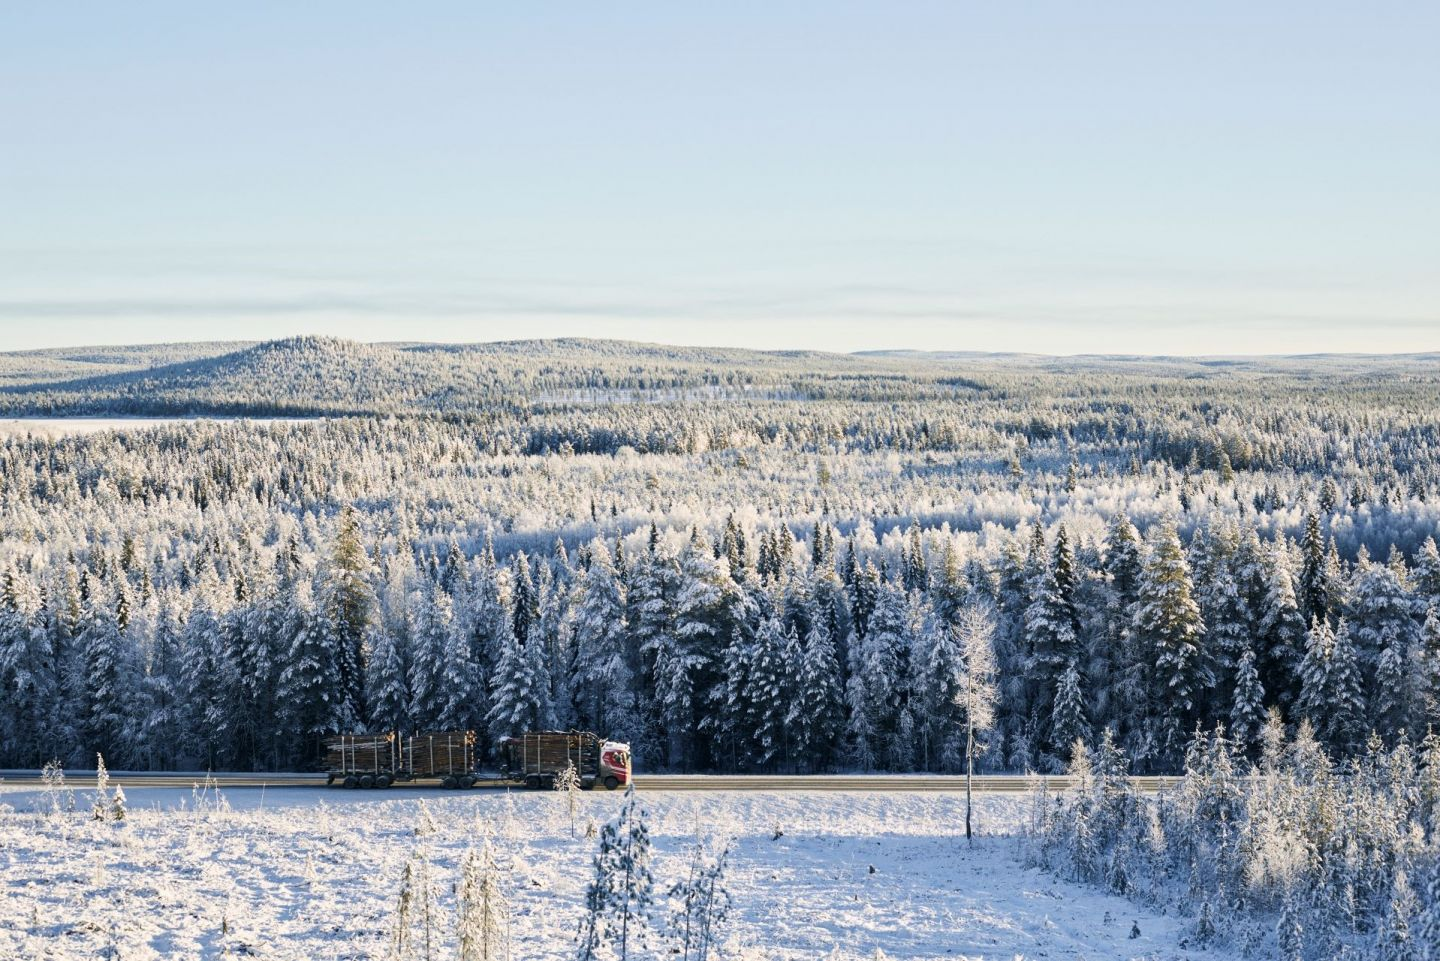 A truck drives on the road in Lapland in the winter